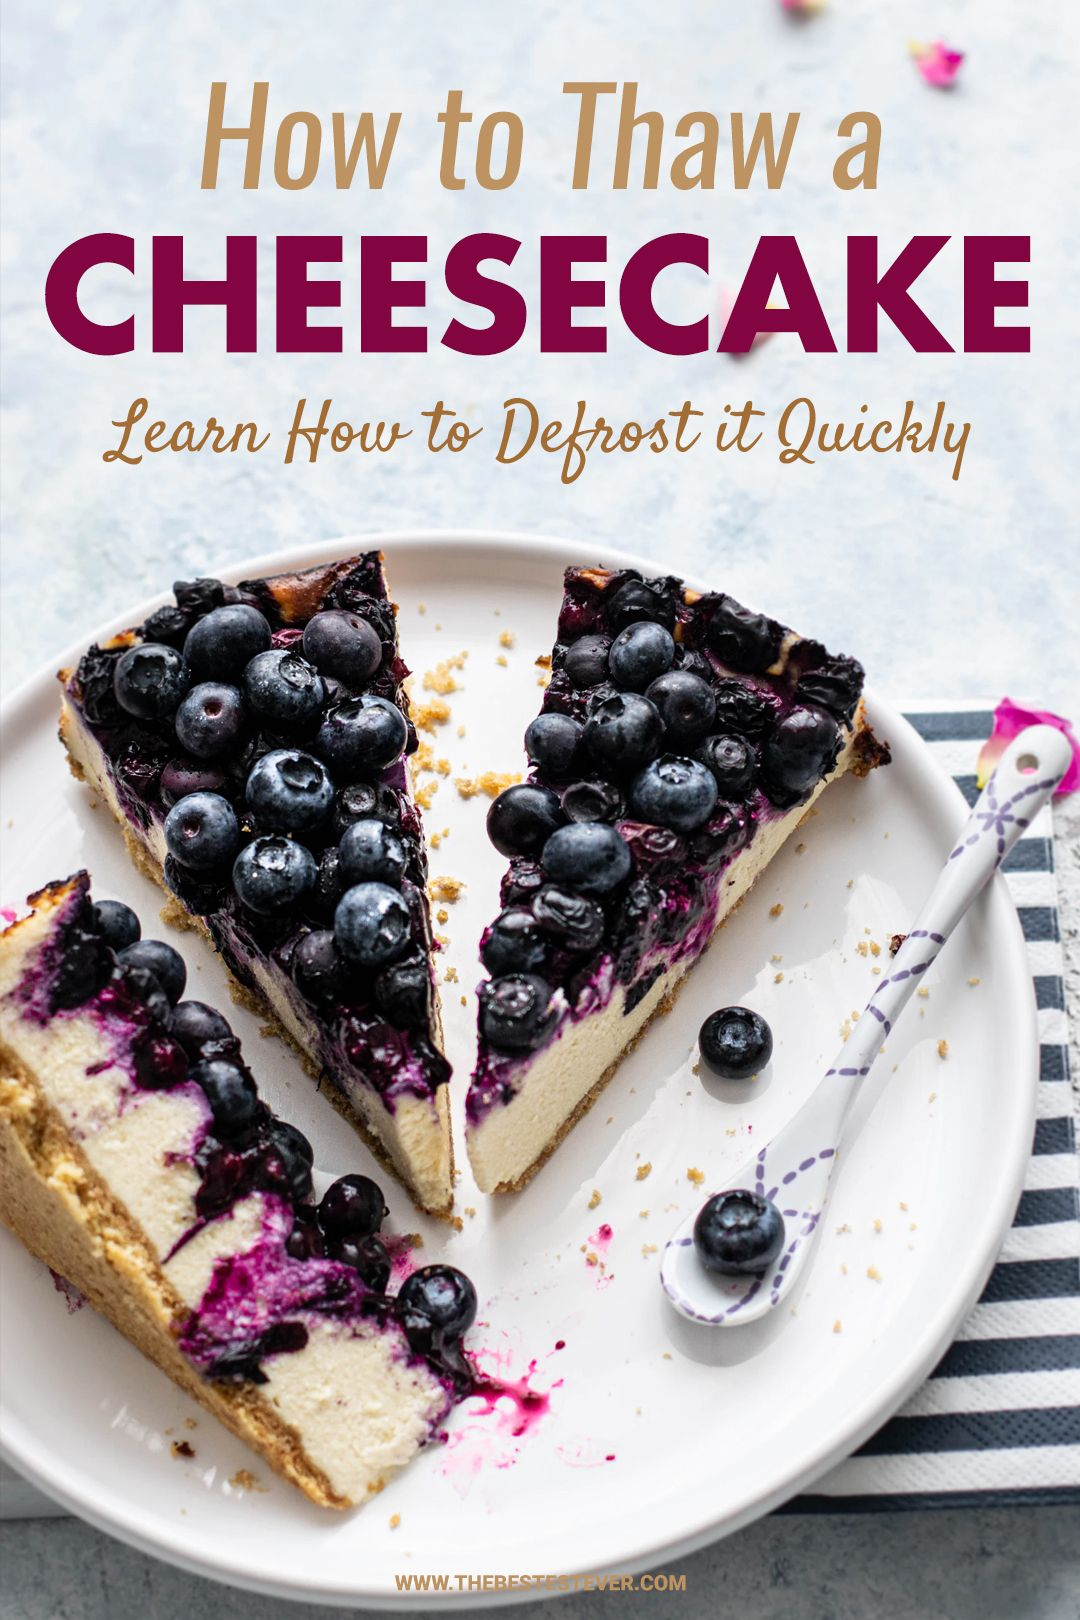 How To Thaw Defrost Cheesecake Quickly 2 Best Methods Highlighted Food Cheesecake Frozen Cheesecake